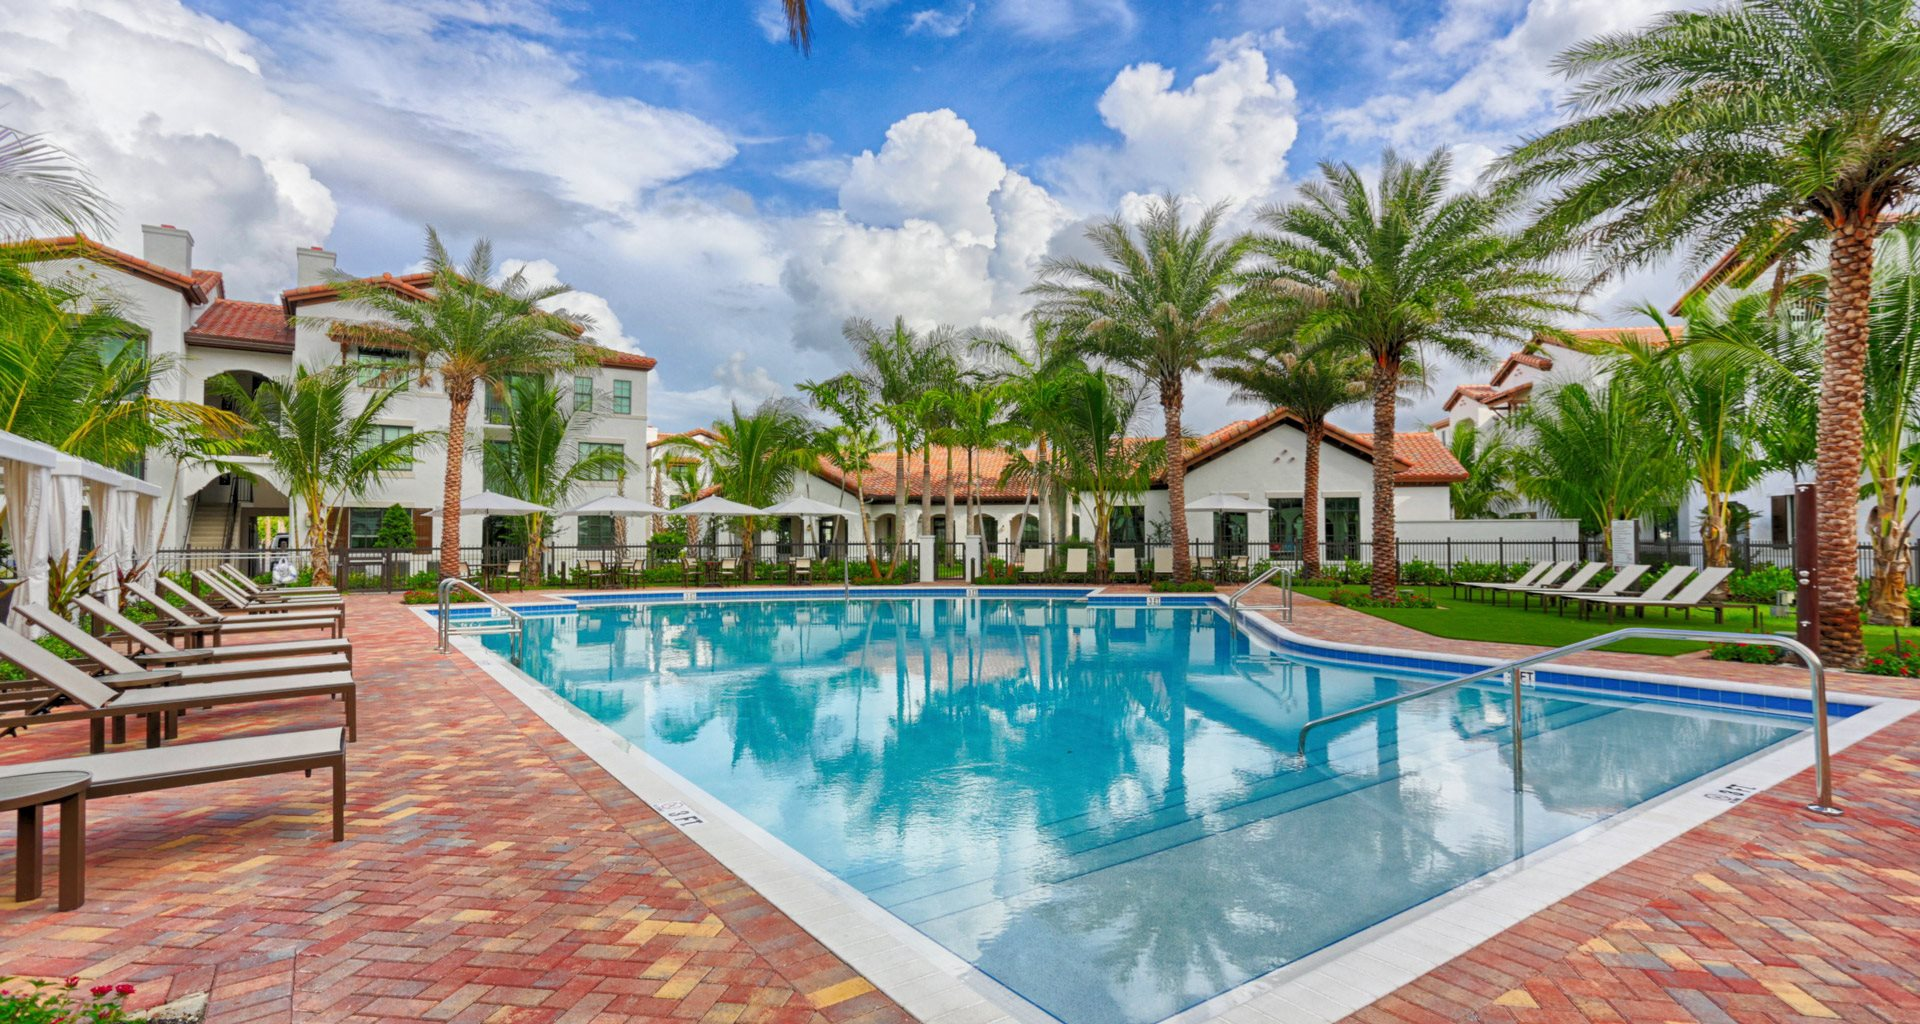 Resort-Style Zero-Entry Pool  at Mirador at Doral by Windsor, Florida, 33122